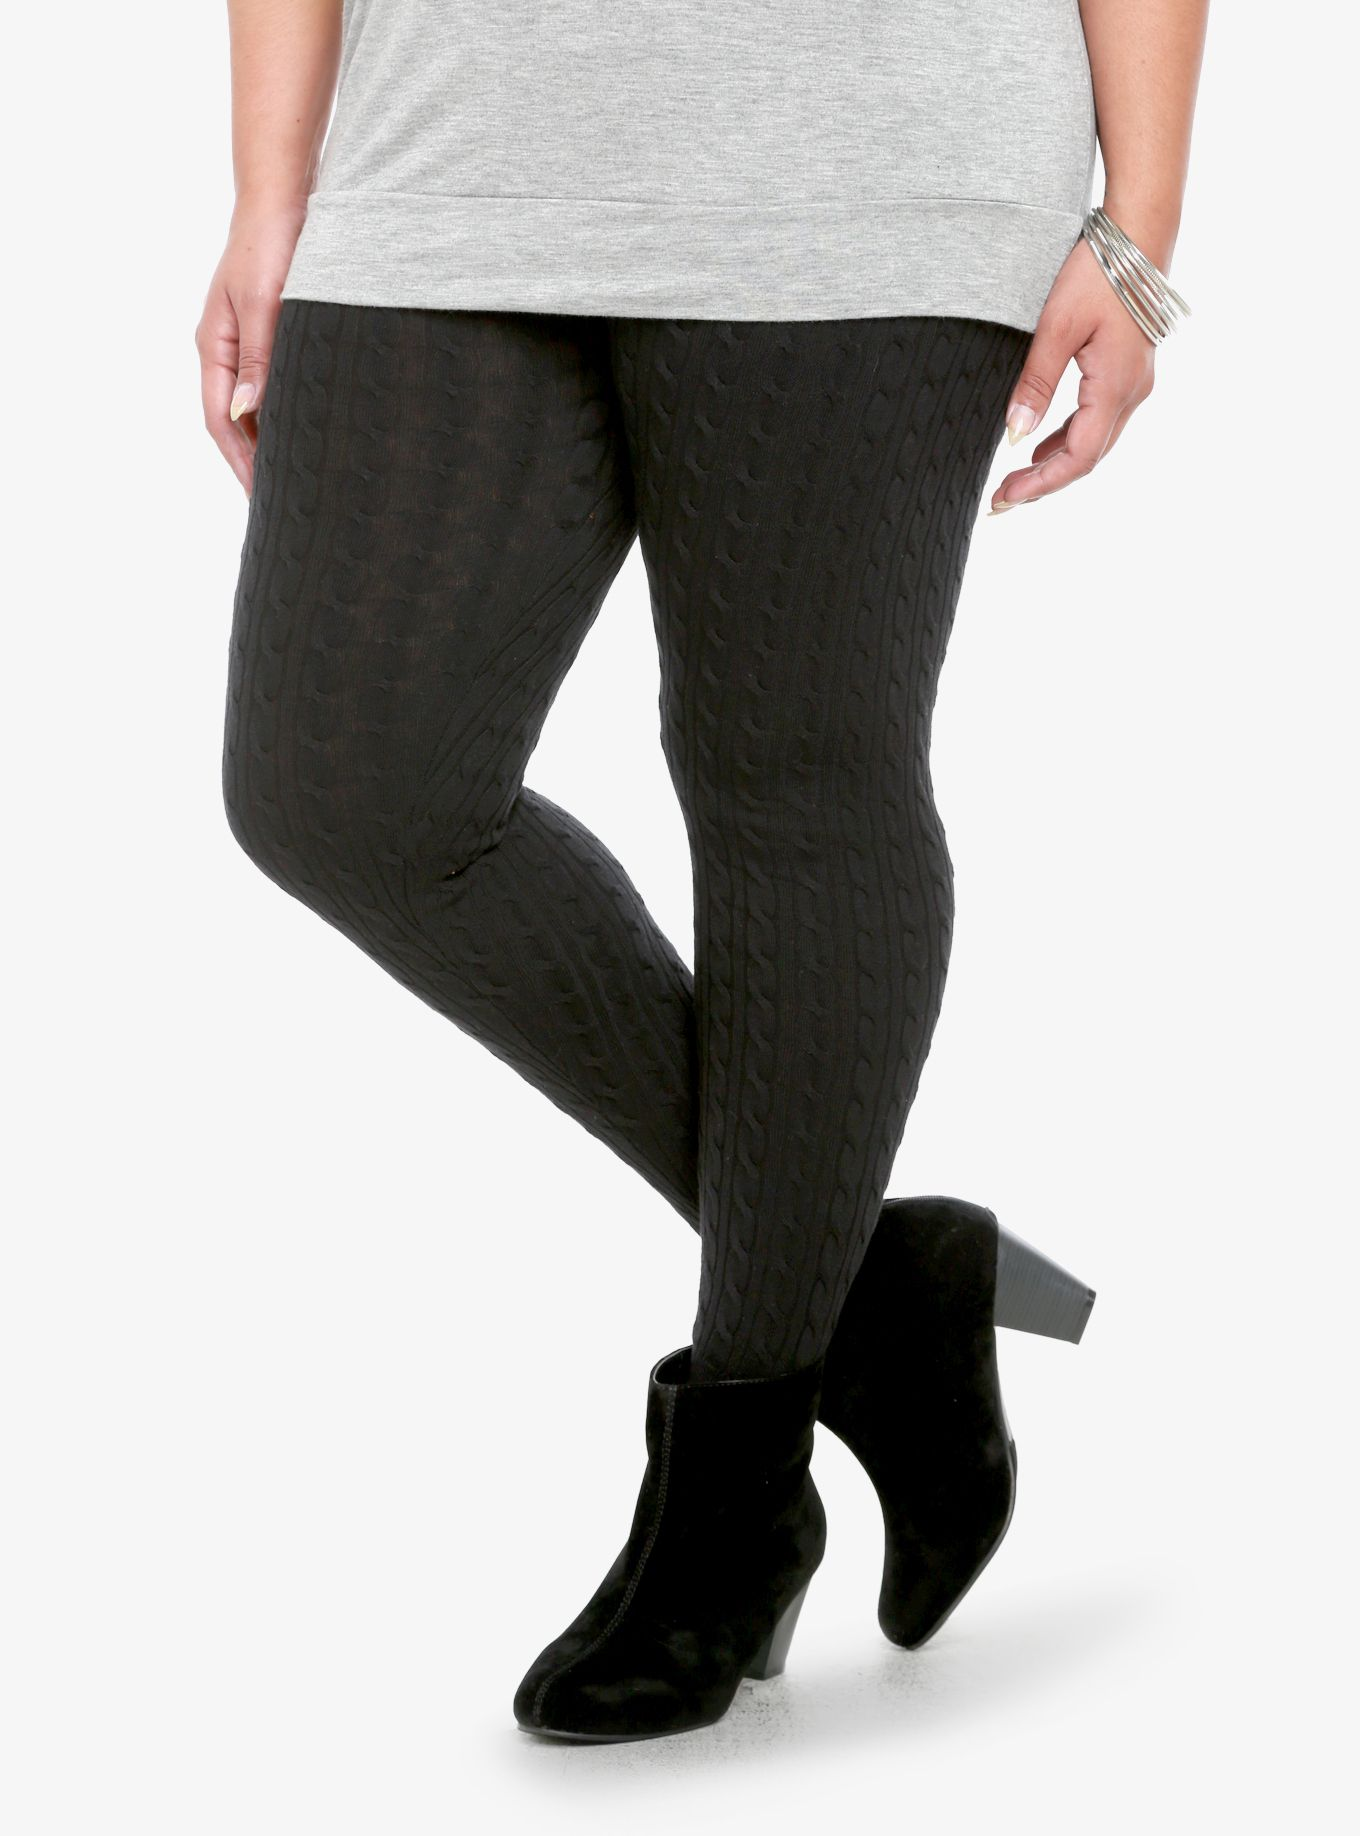 d9af00d7dba551 Cable Knit Leggings | Torrid | Clothes | Knit leggings, Cable knit ...